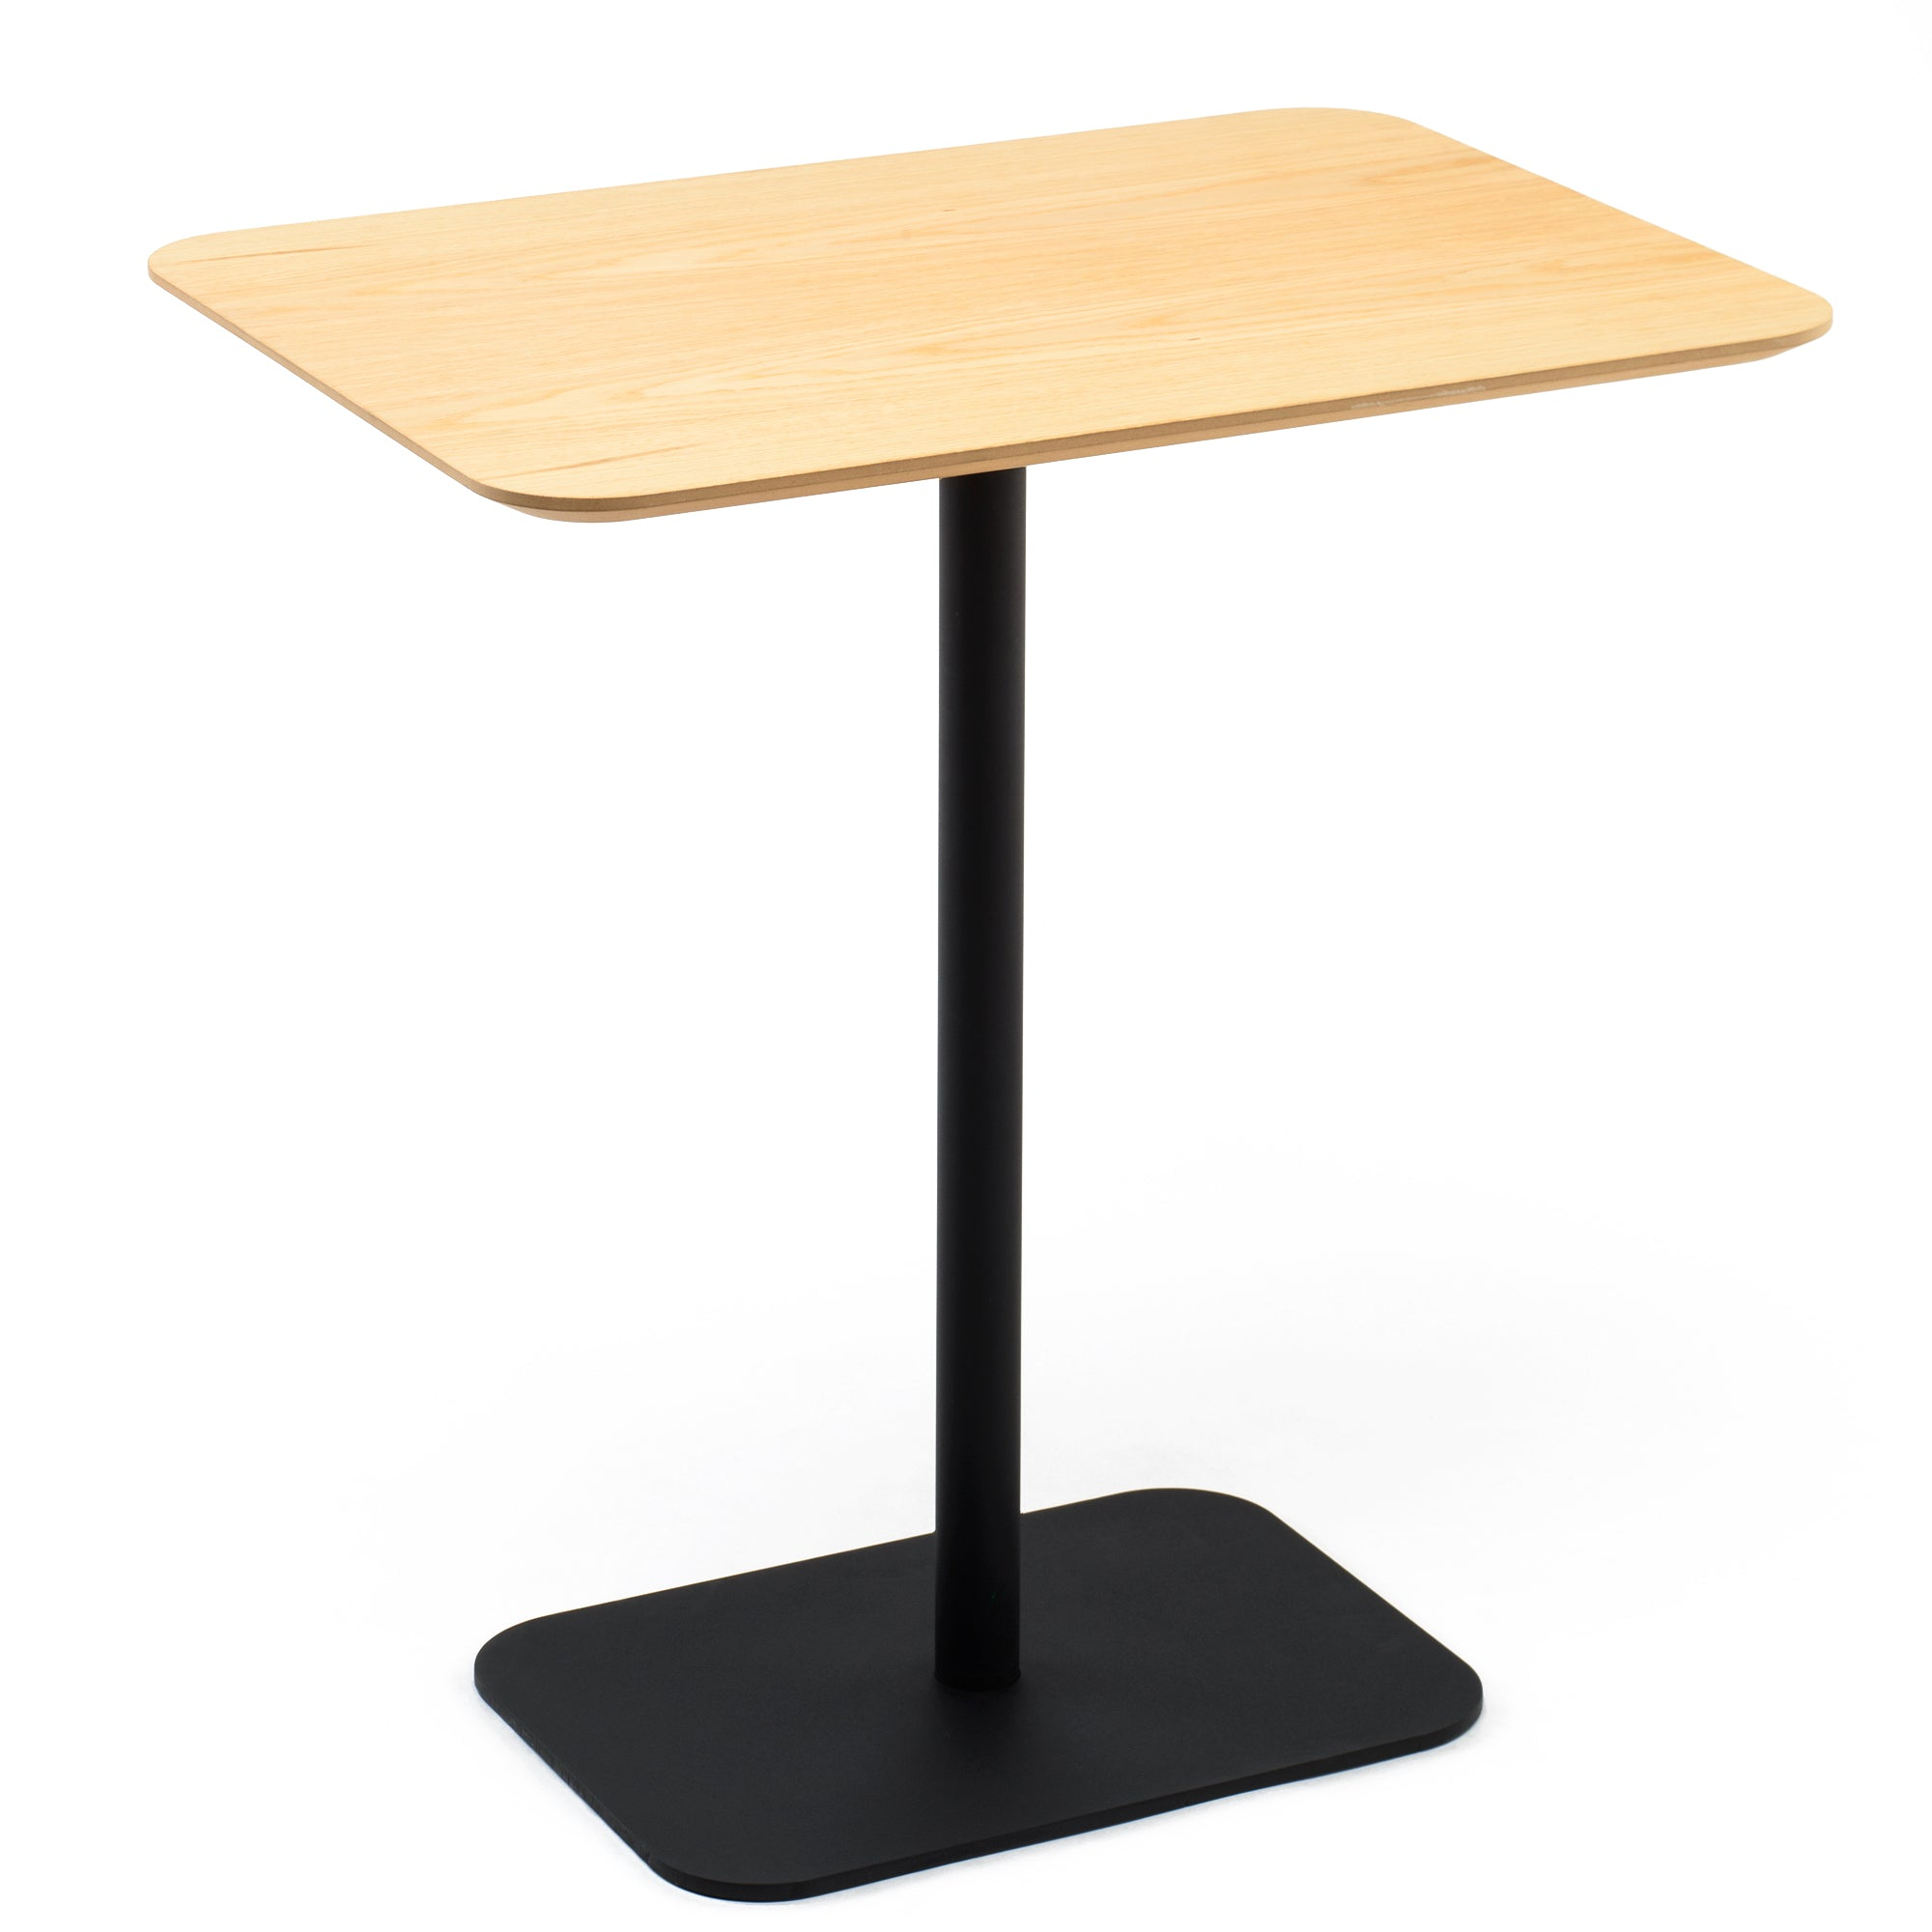 MG Side Tables: MG 3